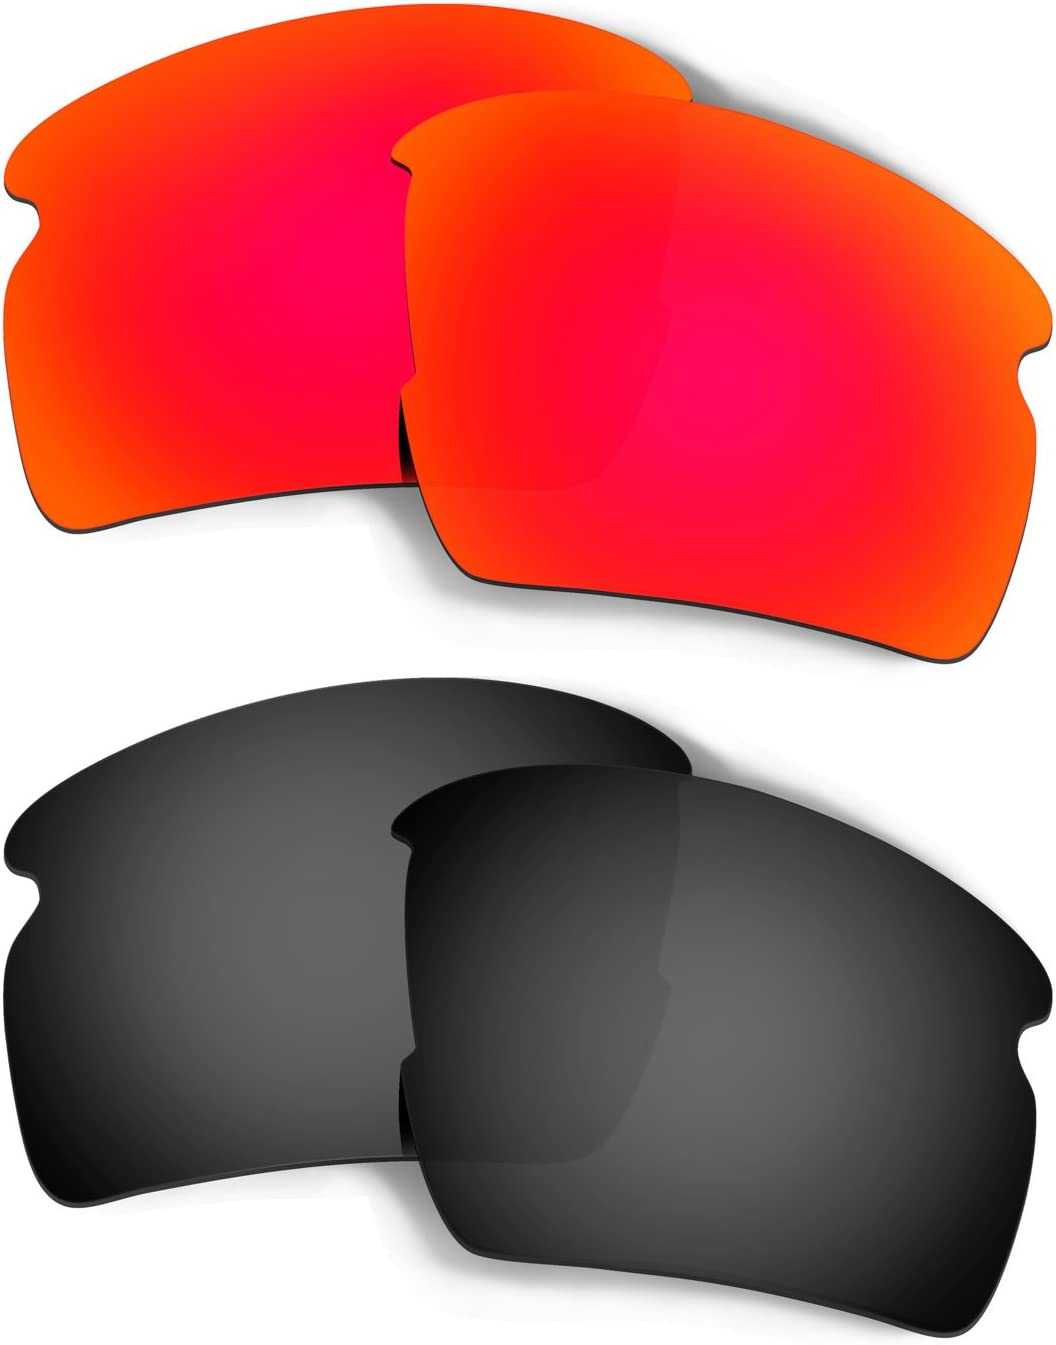 HKUCO Replacement Lenses for Oakley Flak 2.0 AF OO9271 Sunglasses Red/Black